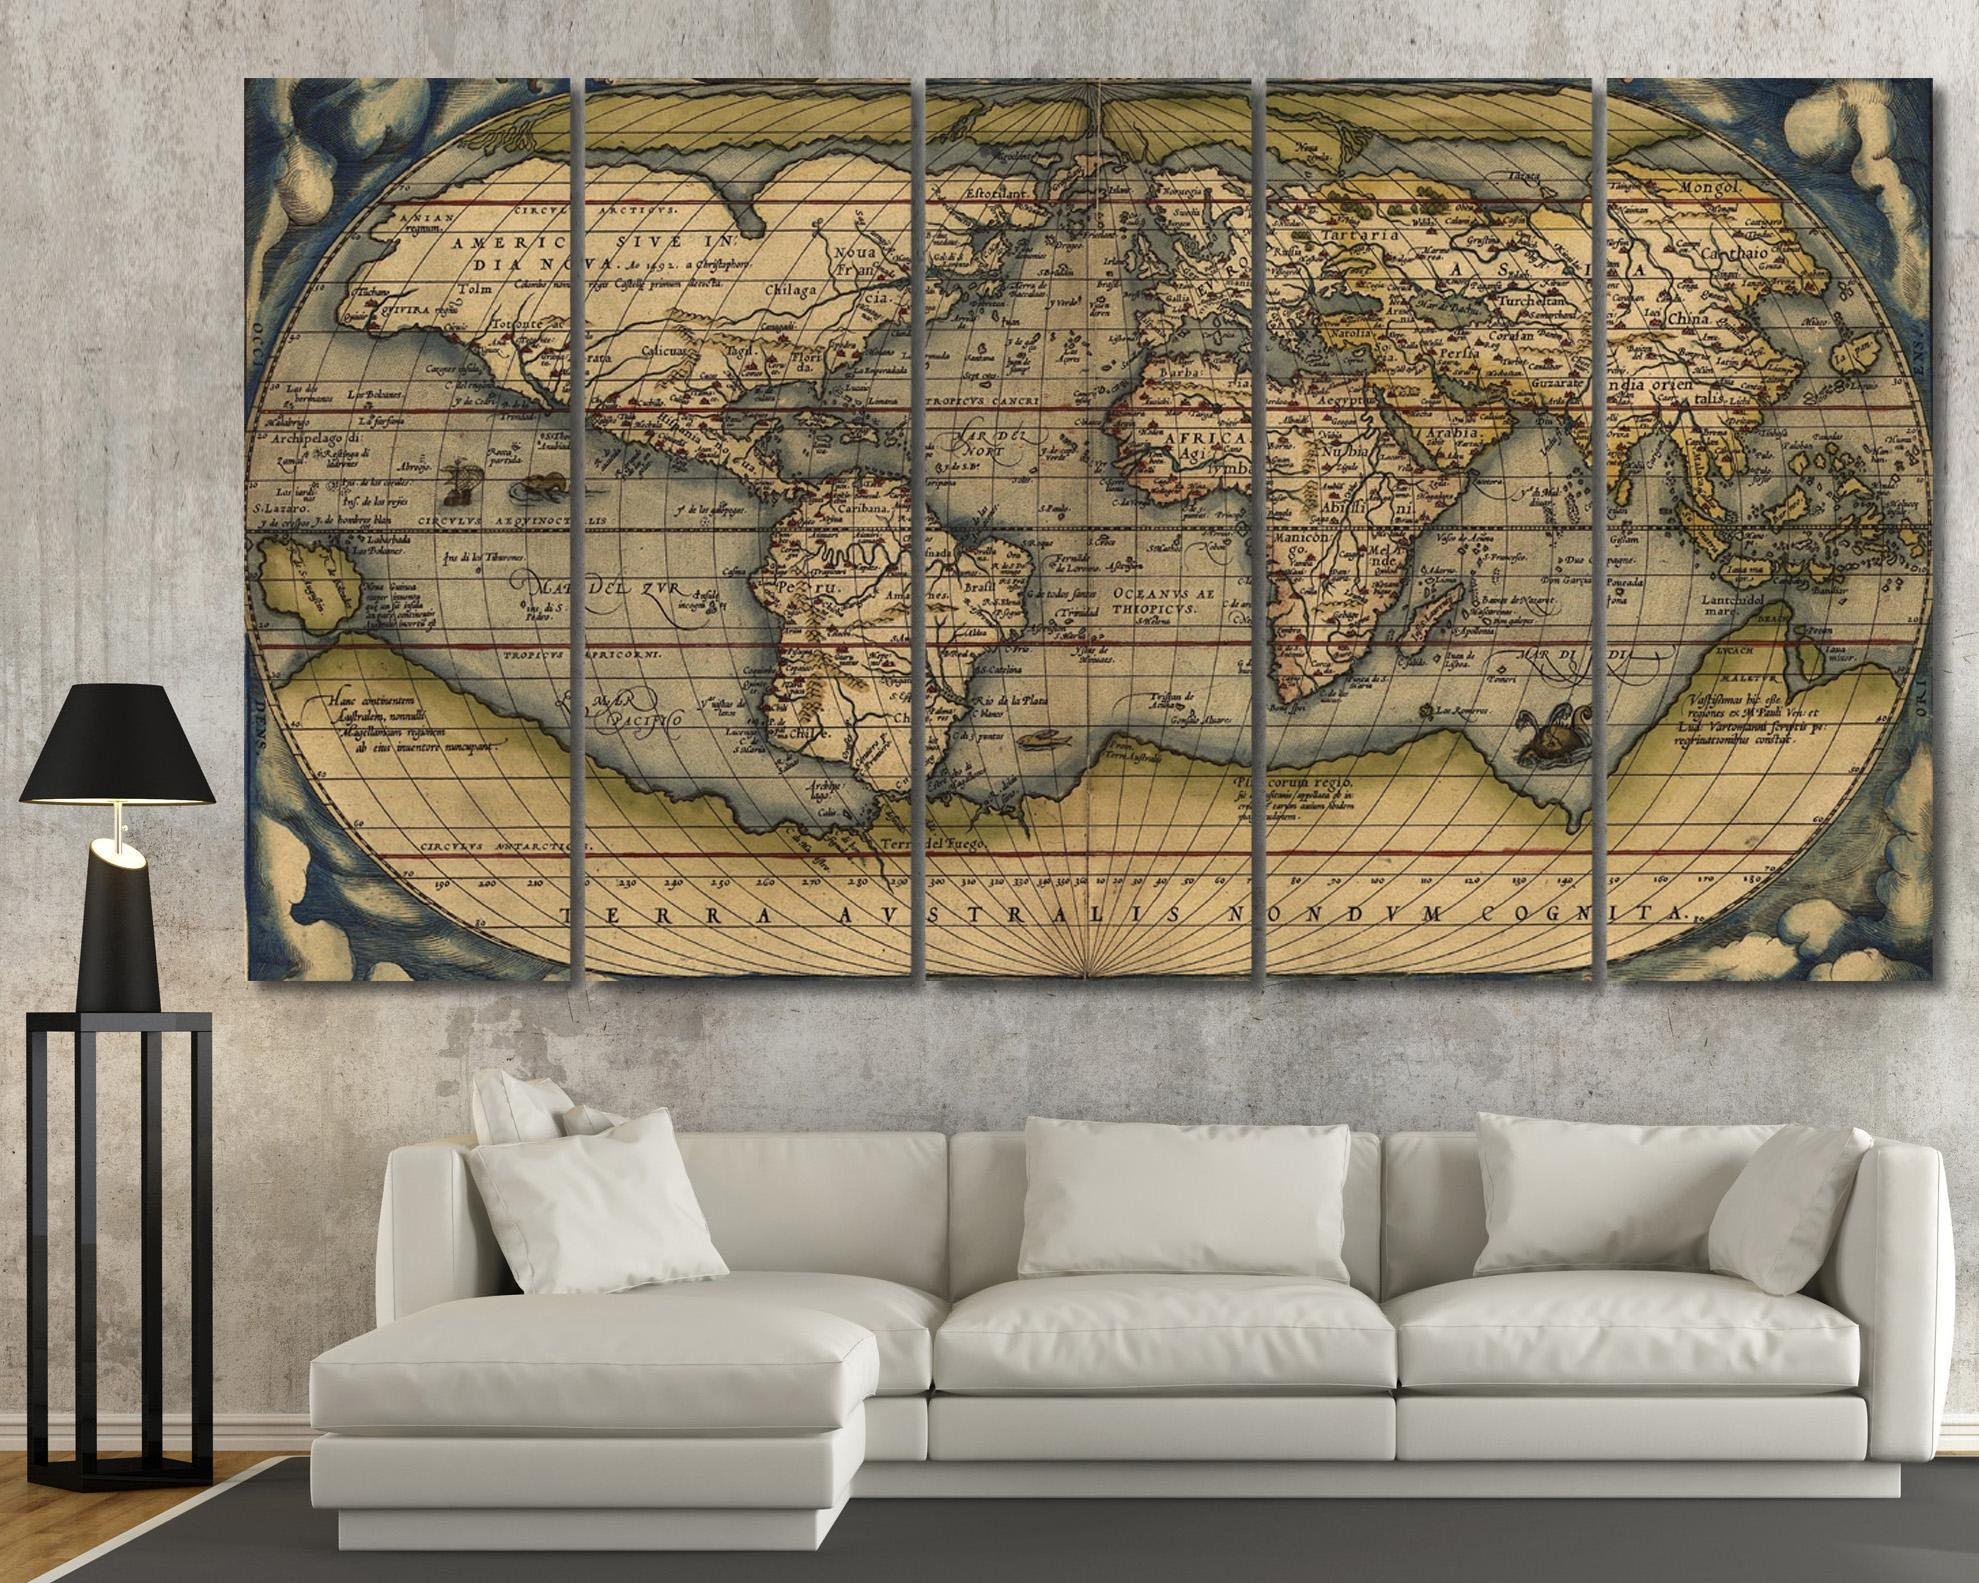 Large Vintage Wall Art Old World Map At Texelprintart For Vintage Map Wall Art (View 2 of 20)